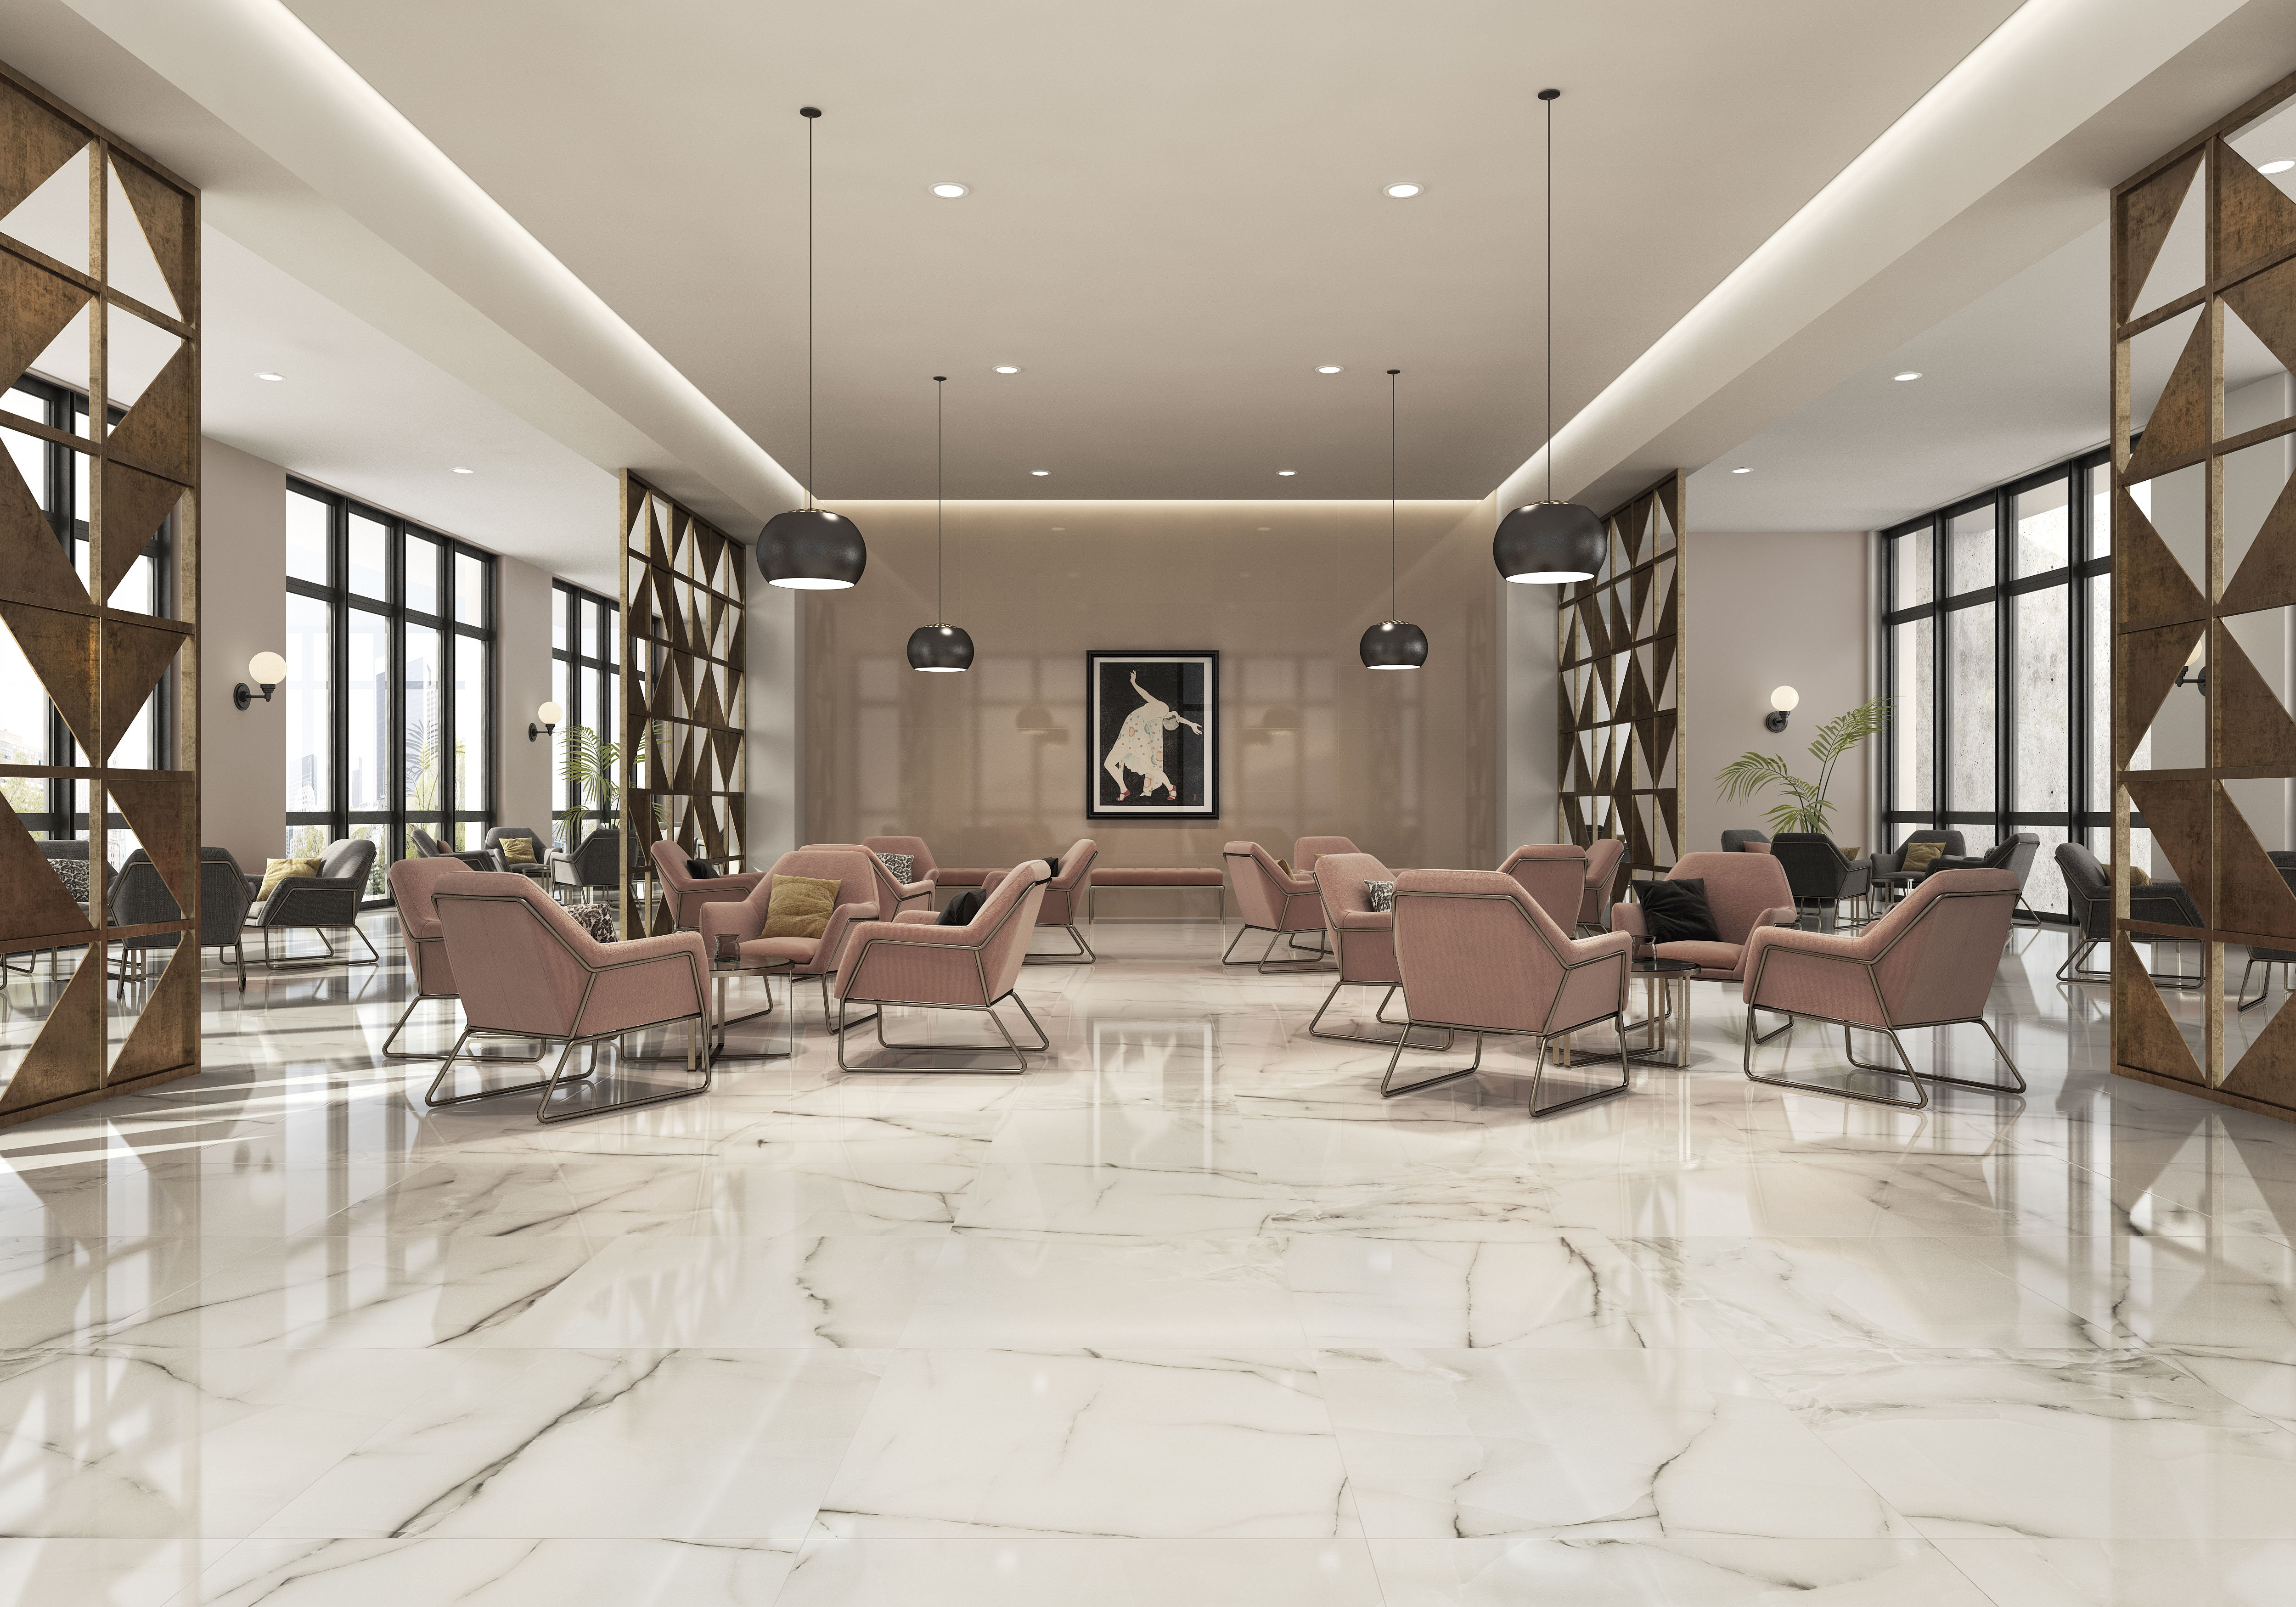 Stratum_STR11P_Onyx Marble_Polished_800 x 800mm_Office_Reception_Living [1].jpg